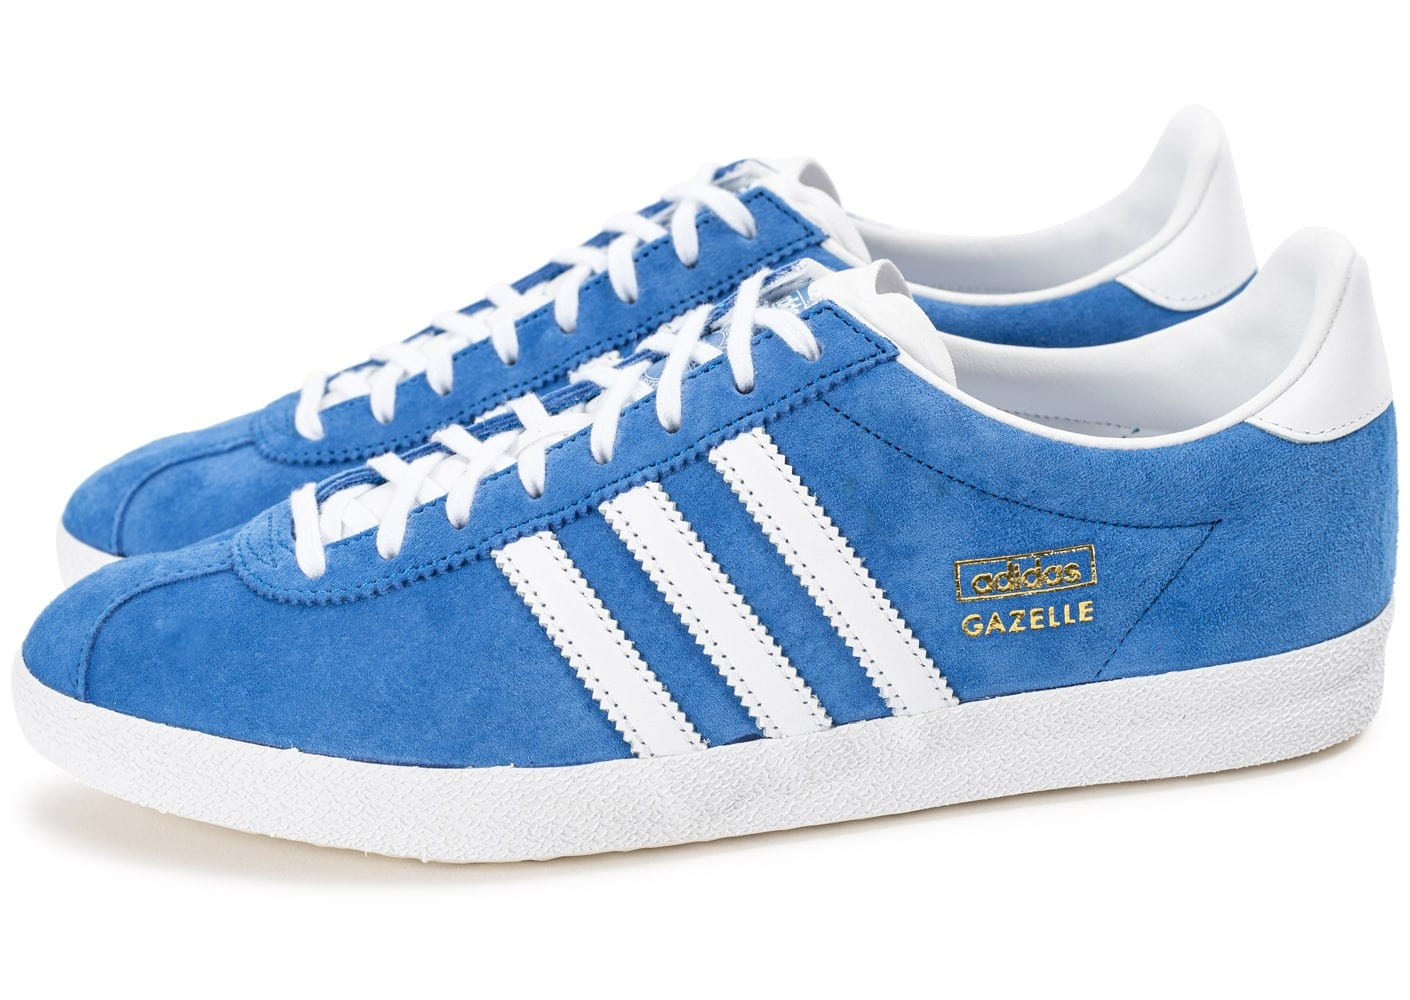 adidas gazelle og bleu ciel chaussures homme chausport. Black Bedroom Furniture Sets. Home Design Ideas